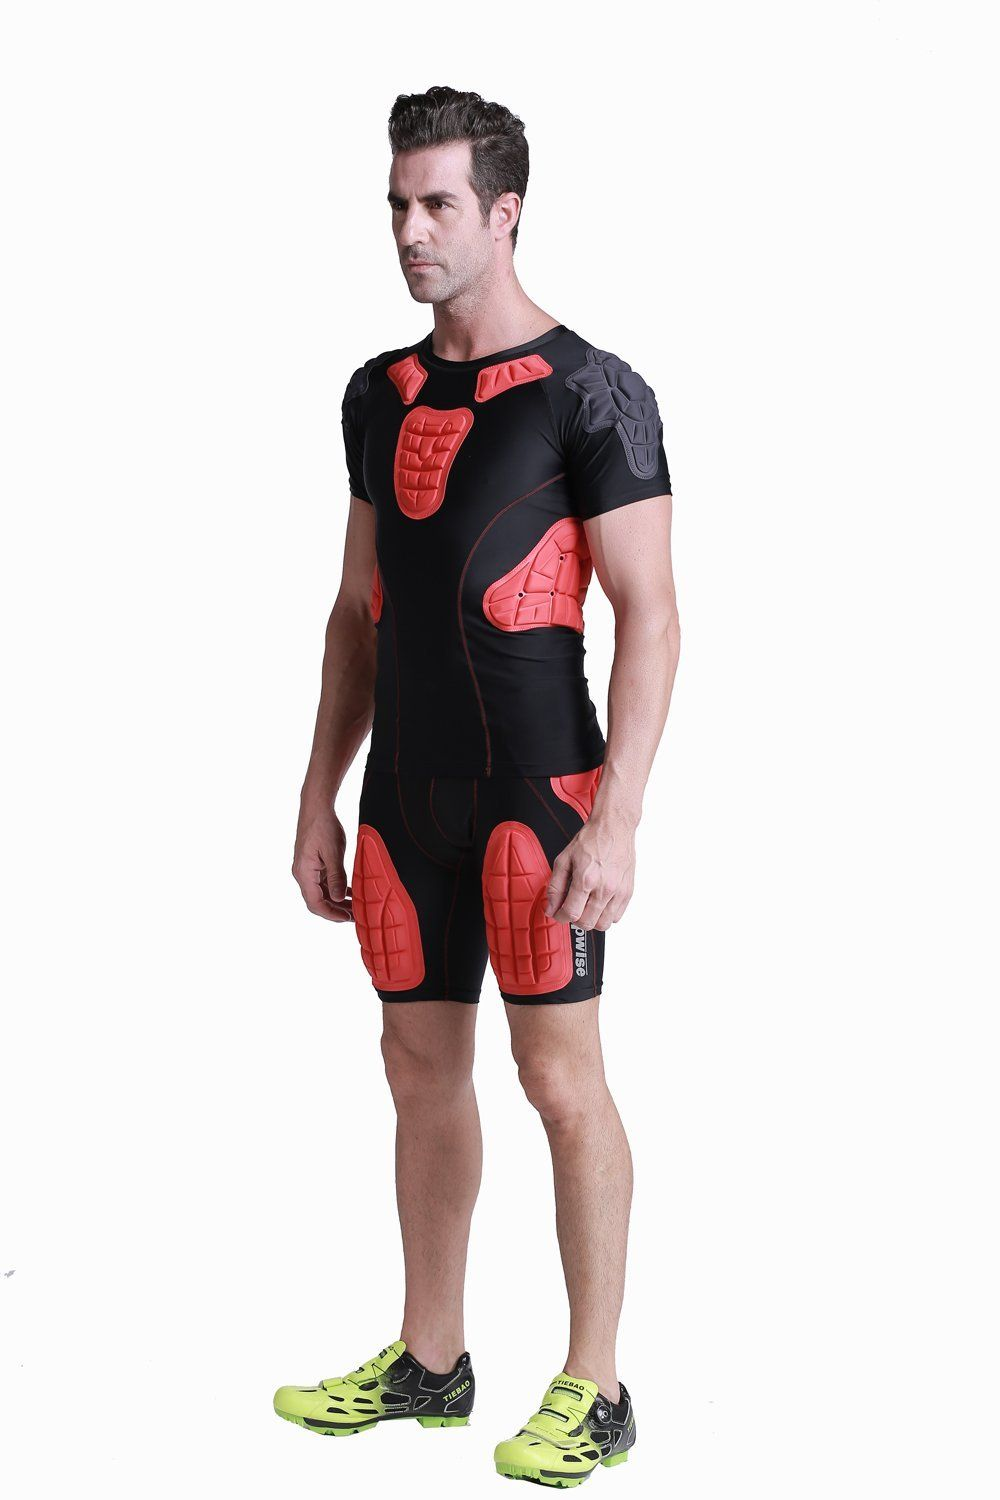 DGYAO Padded Comprssion T Shirt Mens Rugby Safe Guard Top For Chest Rib Shoulder Protector